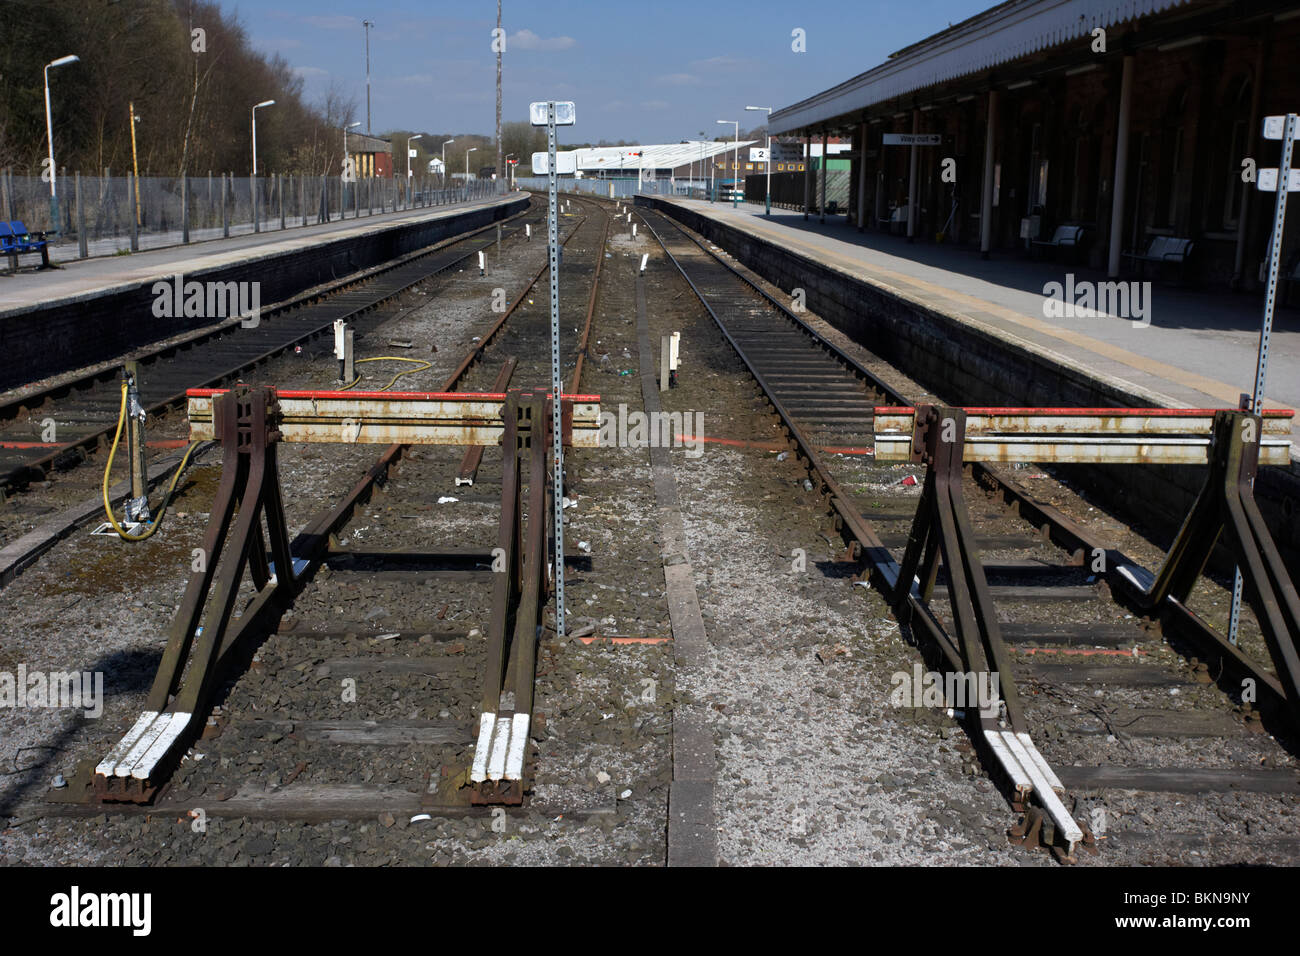 end of the line at buxton railway station Buxton Derbyshire England UK Stock Photo